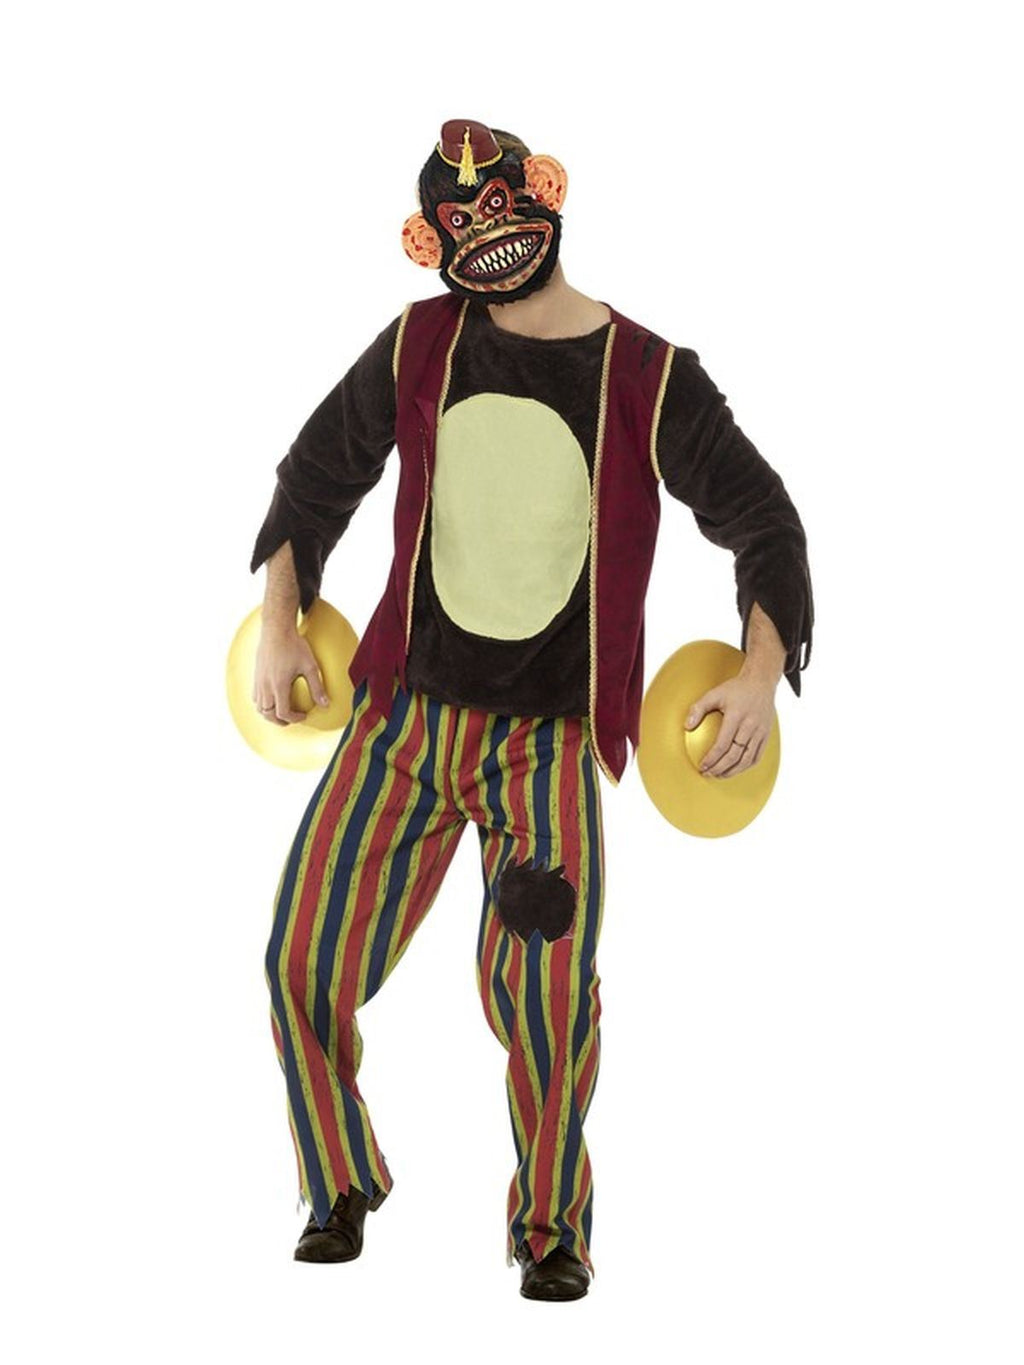 Deluxe Clapping Monkey Toy Men's Fancy Dress Costume